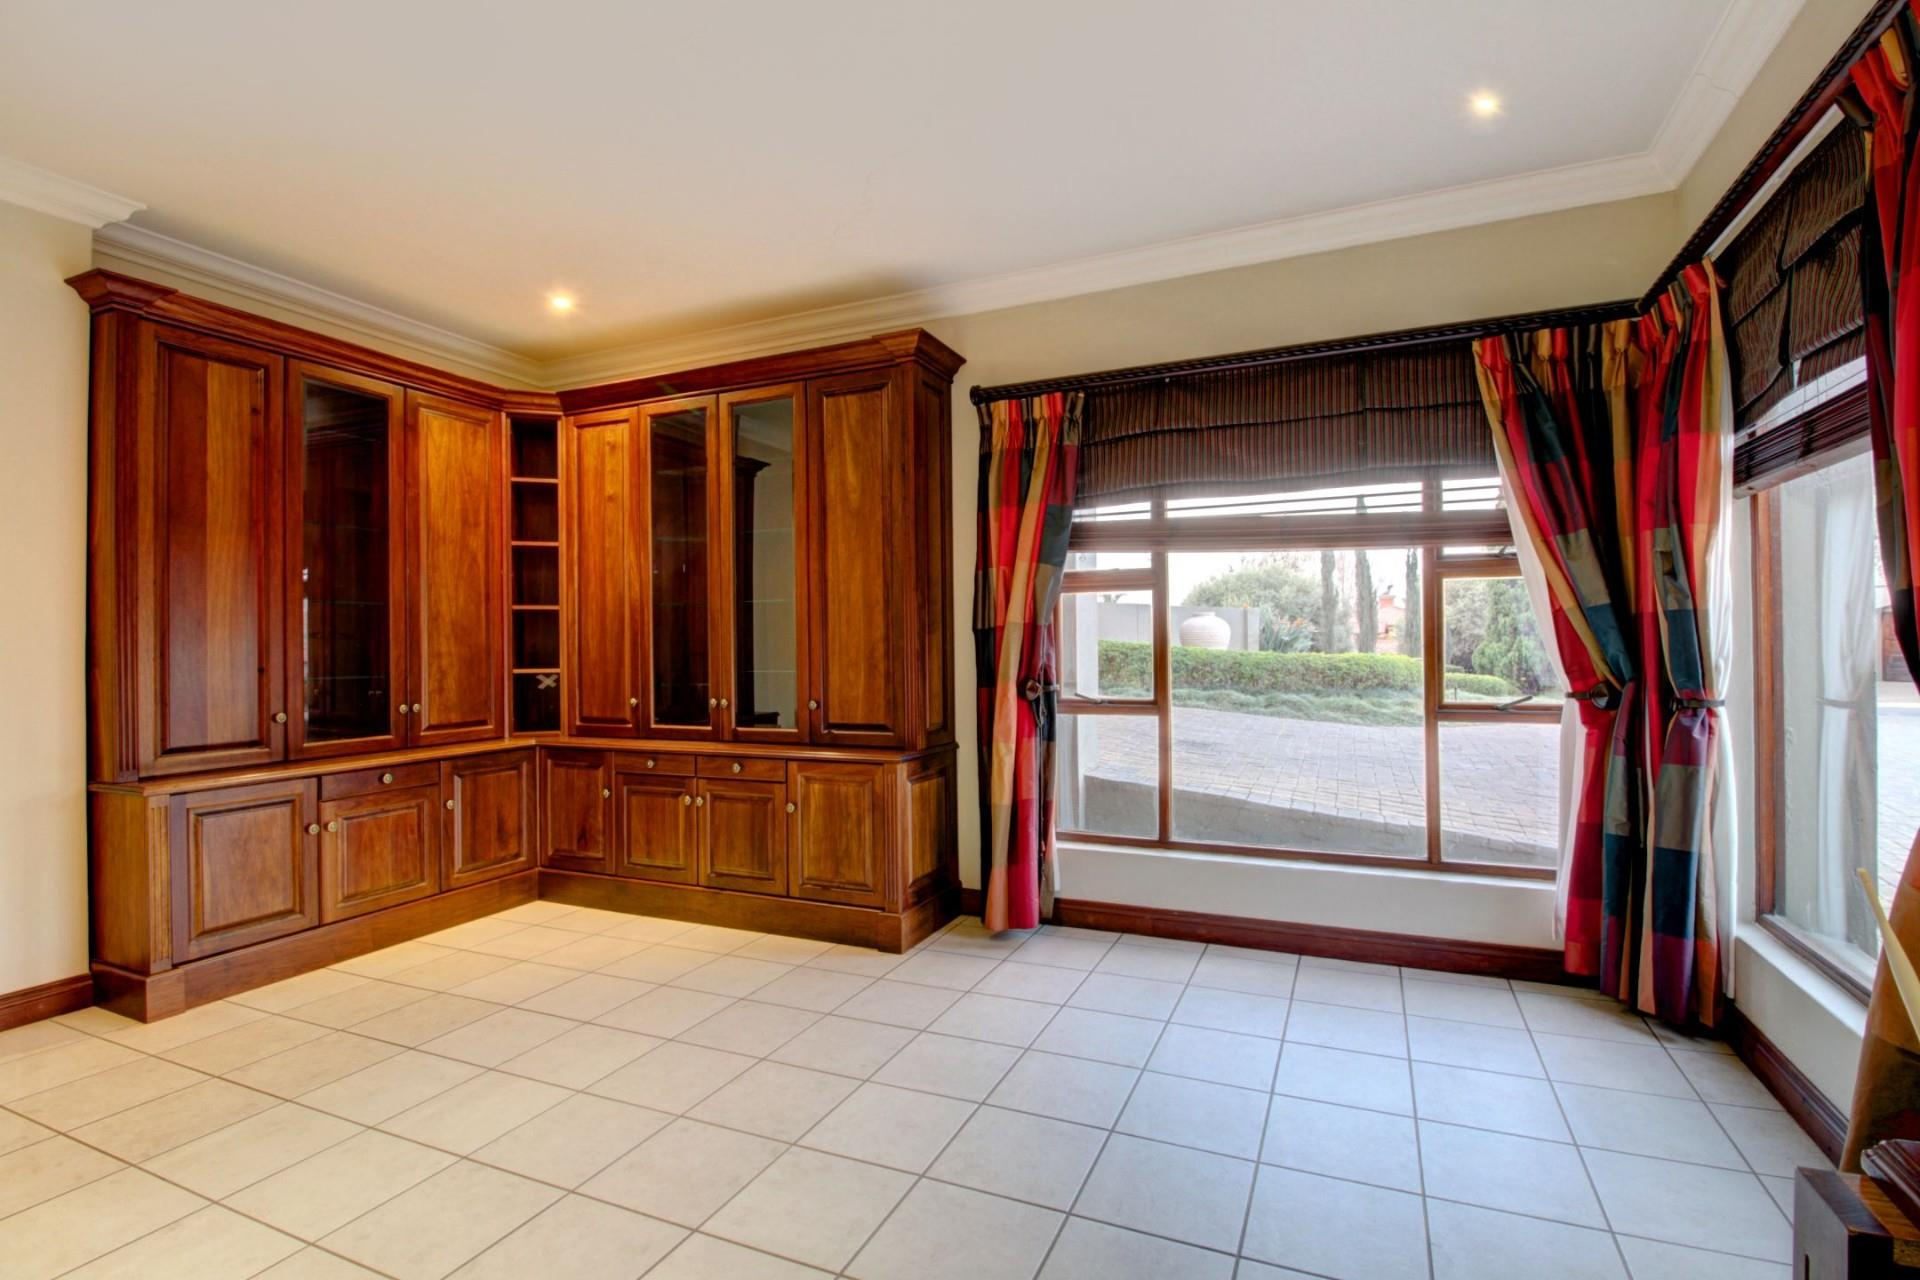 4 Bedroom House For Sale in Woodhill